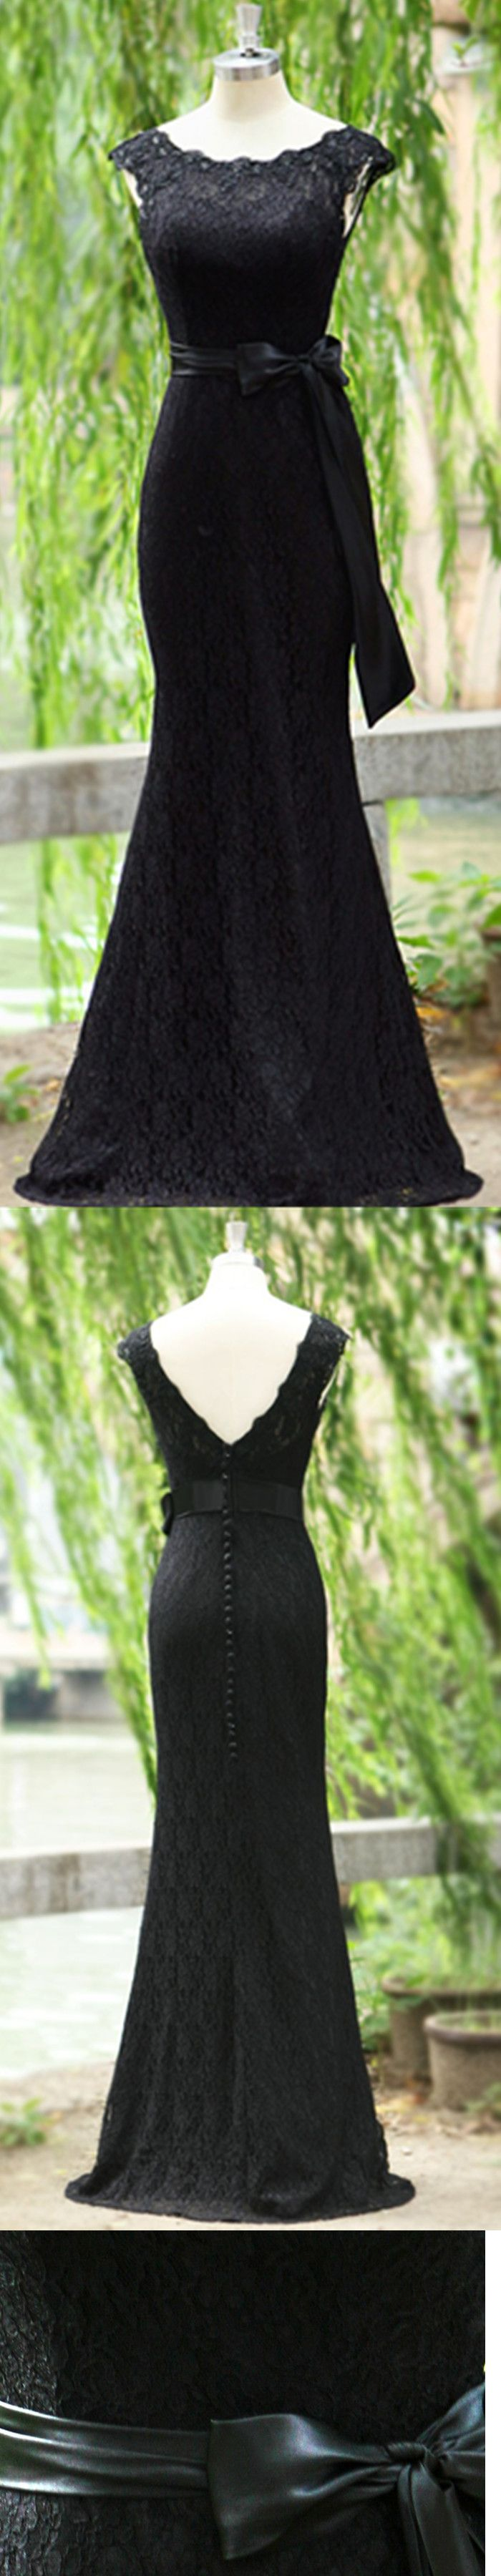 Exquisite Mermaid Black Lace Evening Dress Scoop Neckline Ribbon Backless Floor-length Evening Gowns, long prom dresses, Mother of the Bride Dresses, Lace cocktail dress,Off the Shoulder evening dress, lace wedding dress,Trumpet / Mermaid prom dress Gorgeous dress!!!!